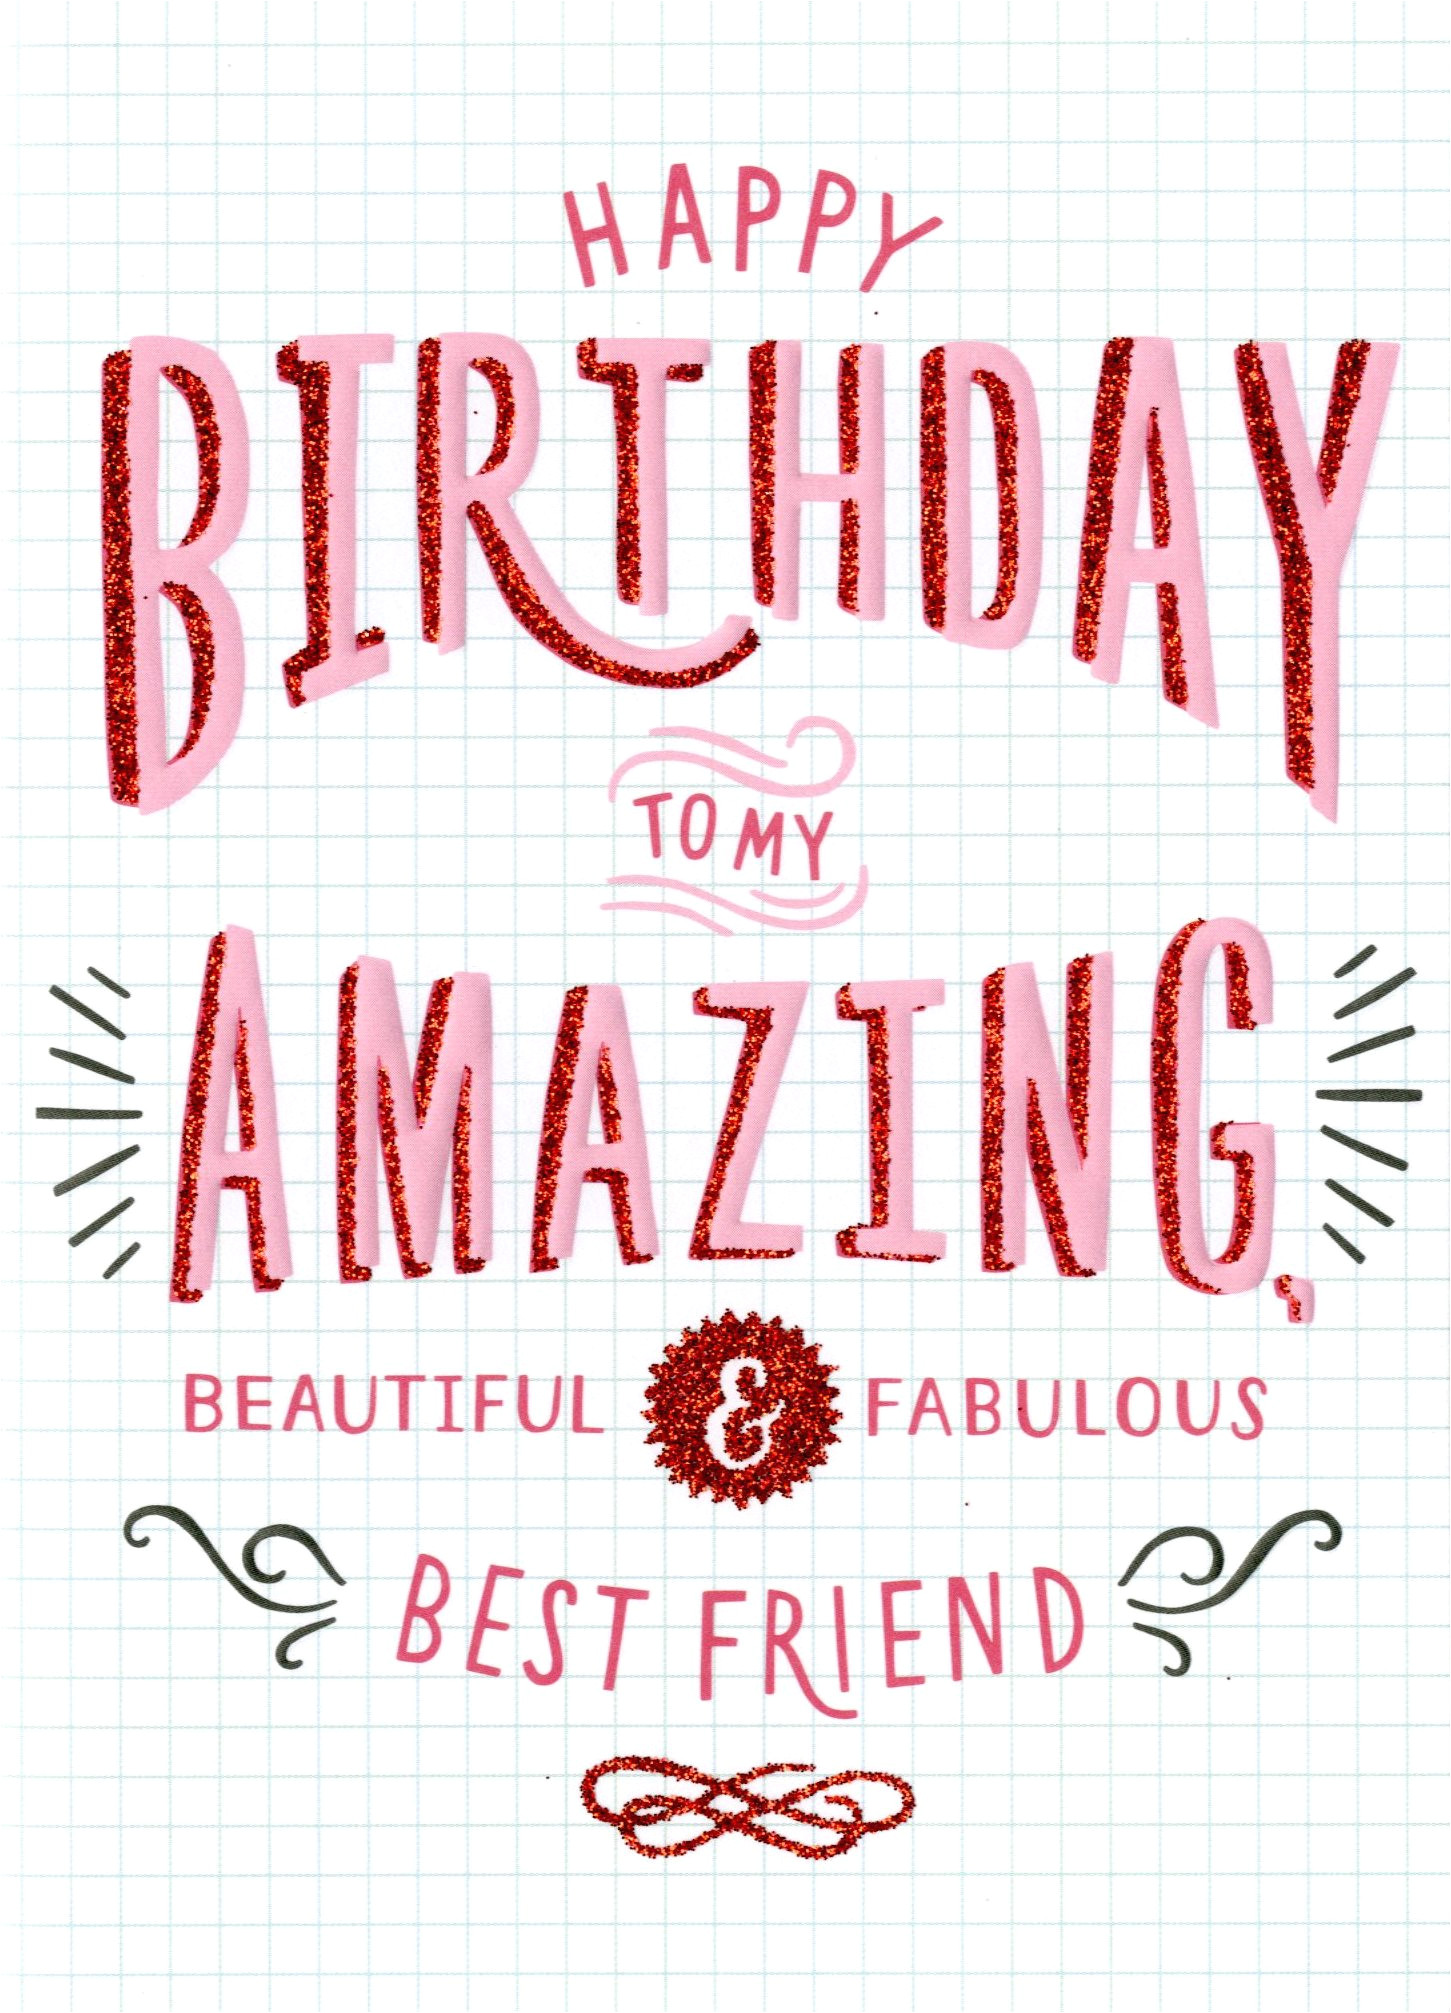 kcsnhmt002 amazing best friend birthday card second nature more than words cards